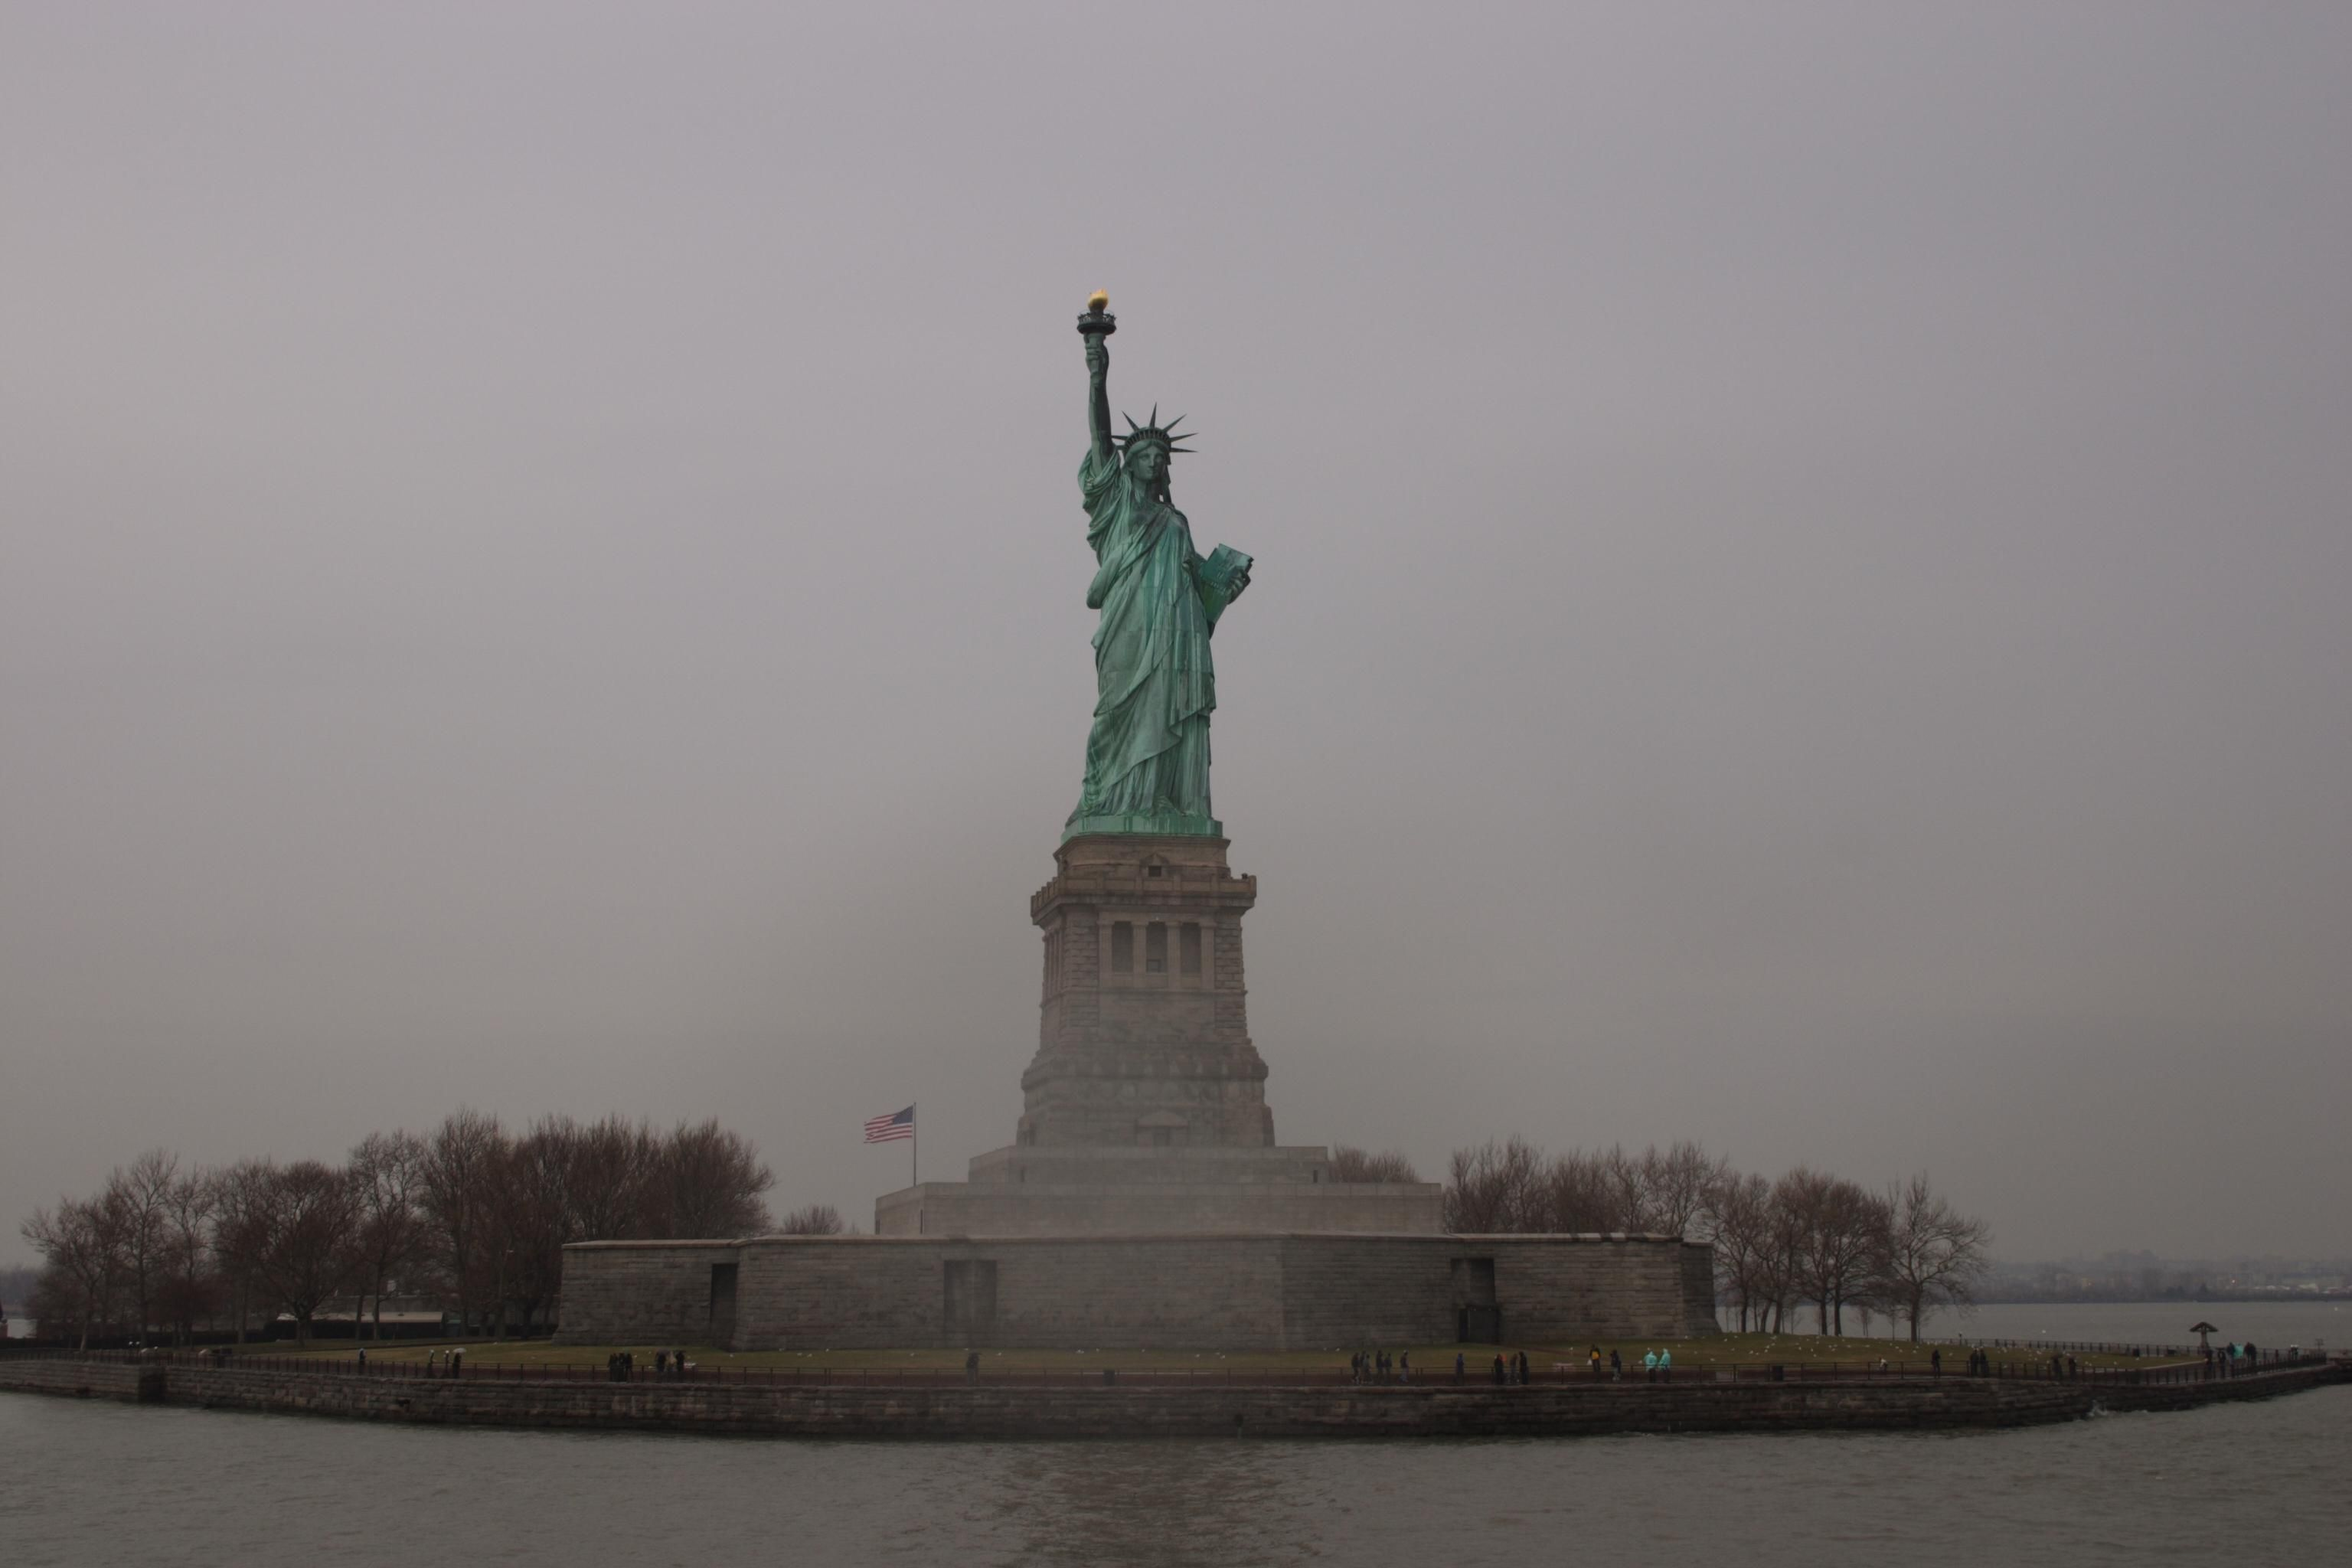 the sophia pedestal pretty james img cool education of statue facts about tickets liberty